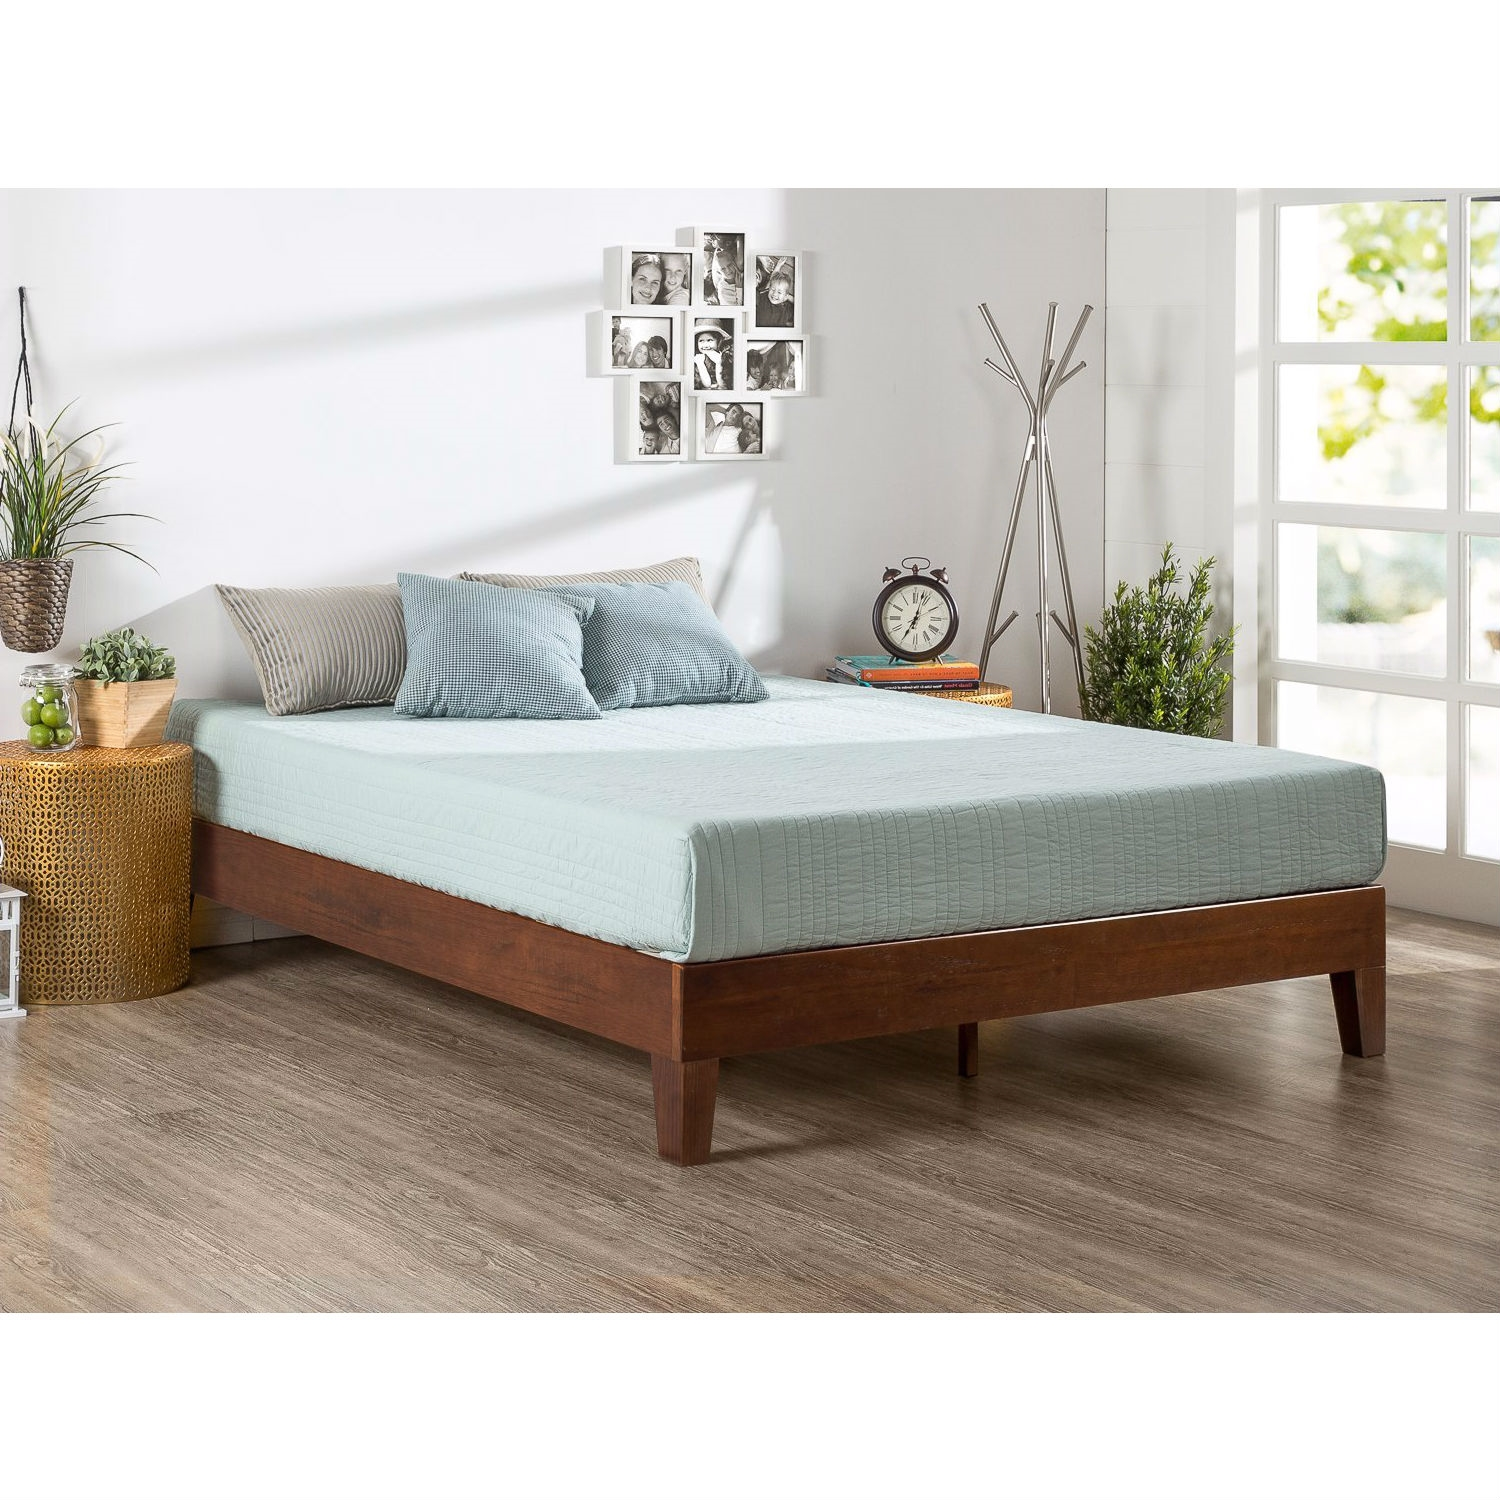 king size low profile solid wood platform bed frame in espresso finish - Solid Wood Platform Bed Frame King